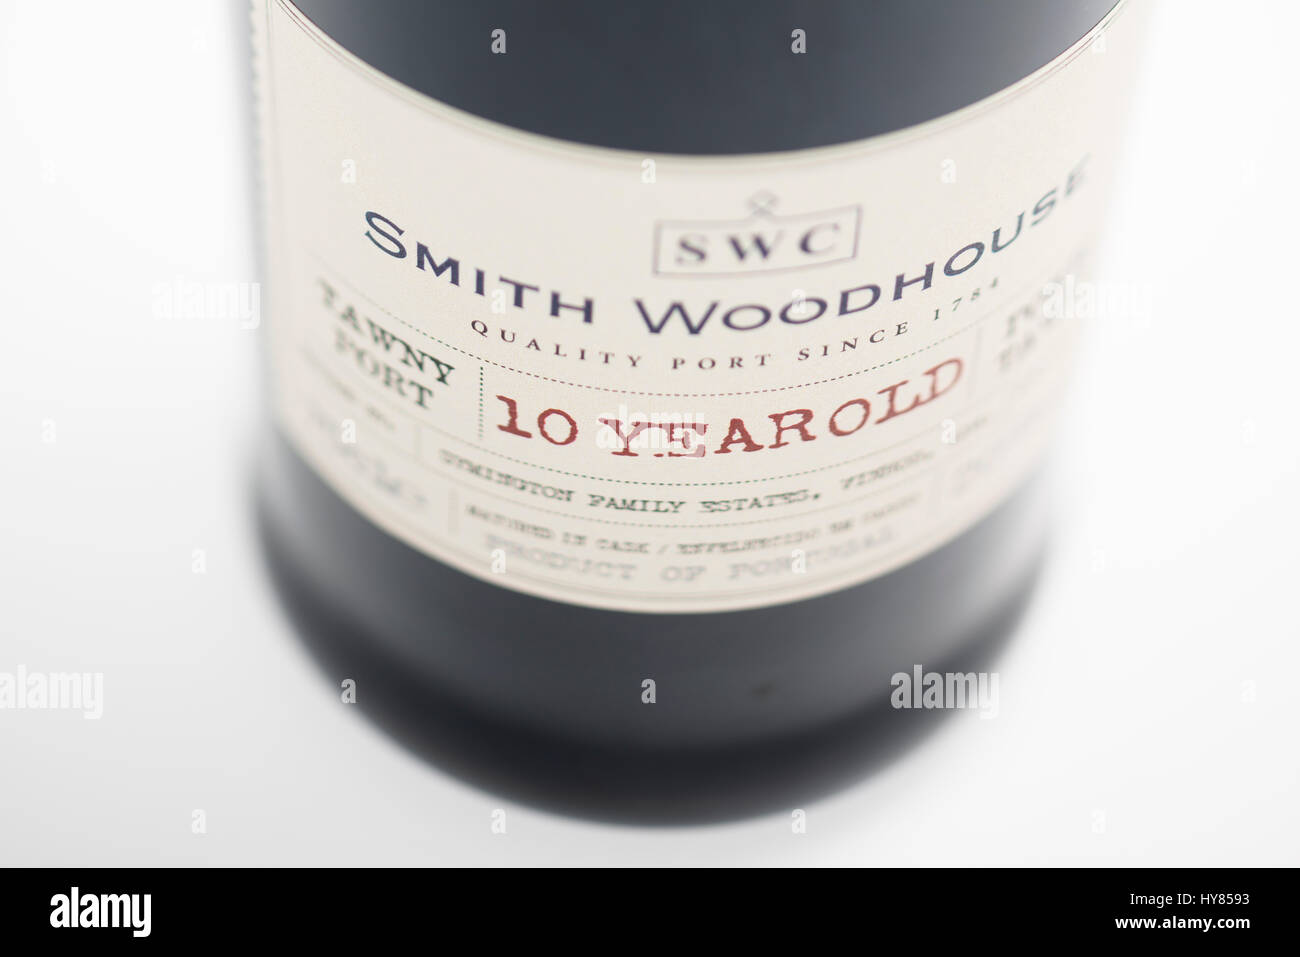 Wine label of a bottle of 10 year old tawny port from Smith Woodhouse Stock Photo